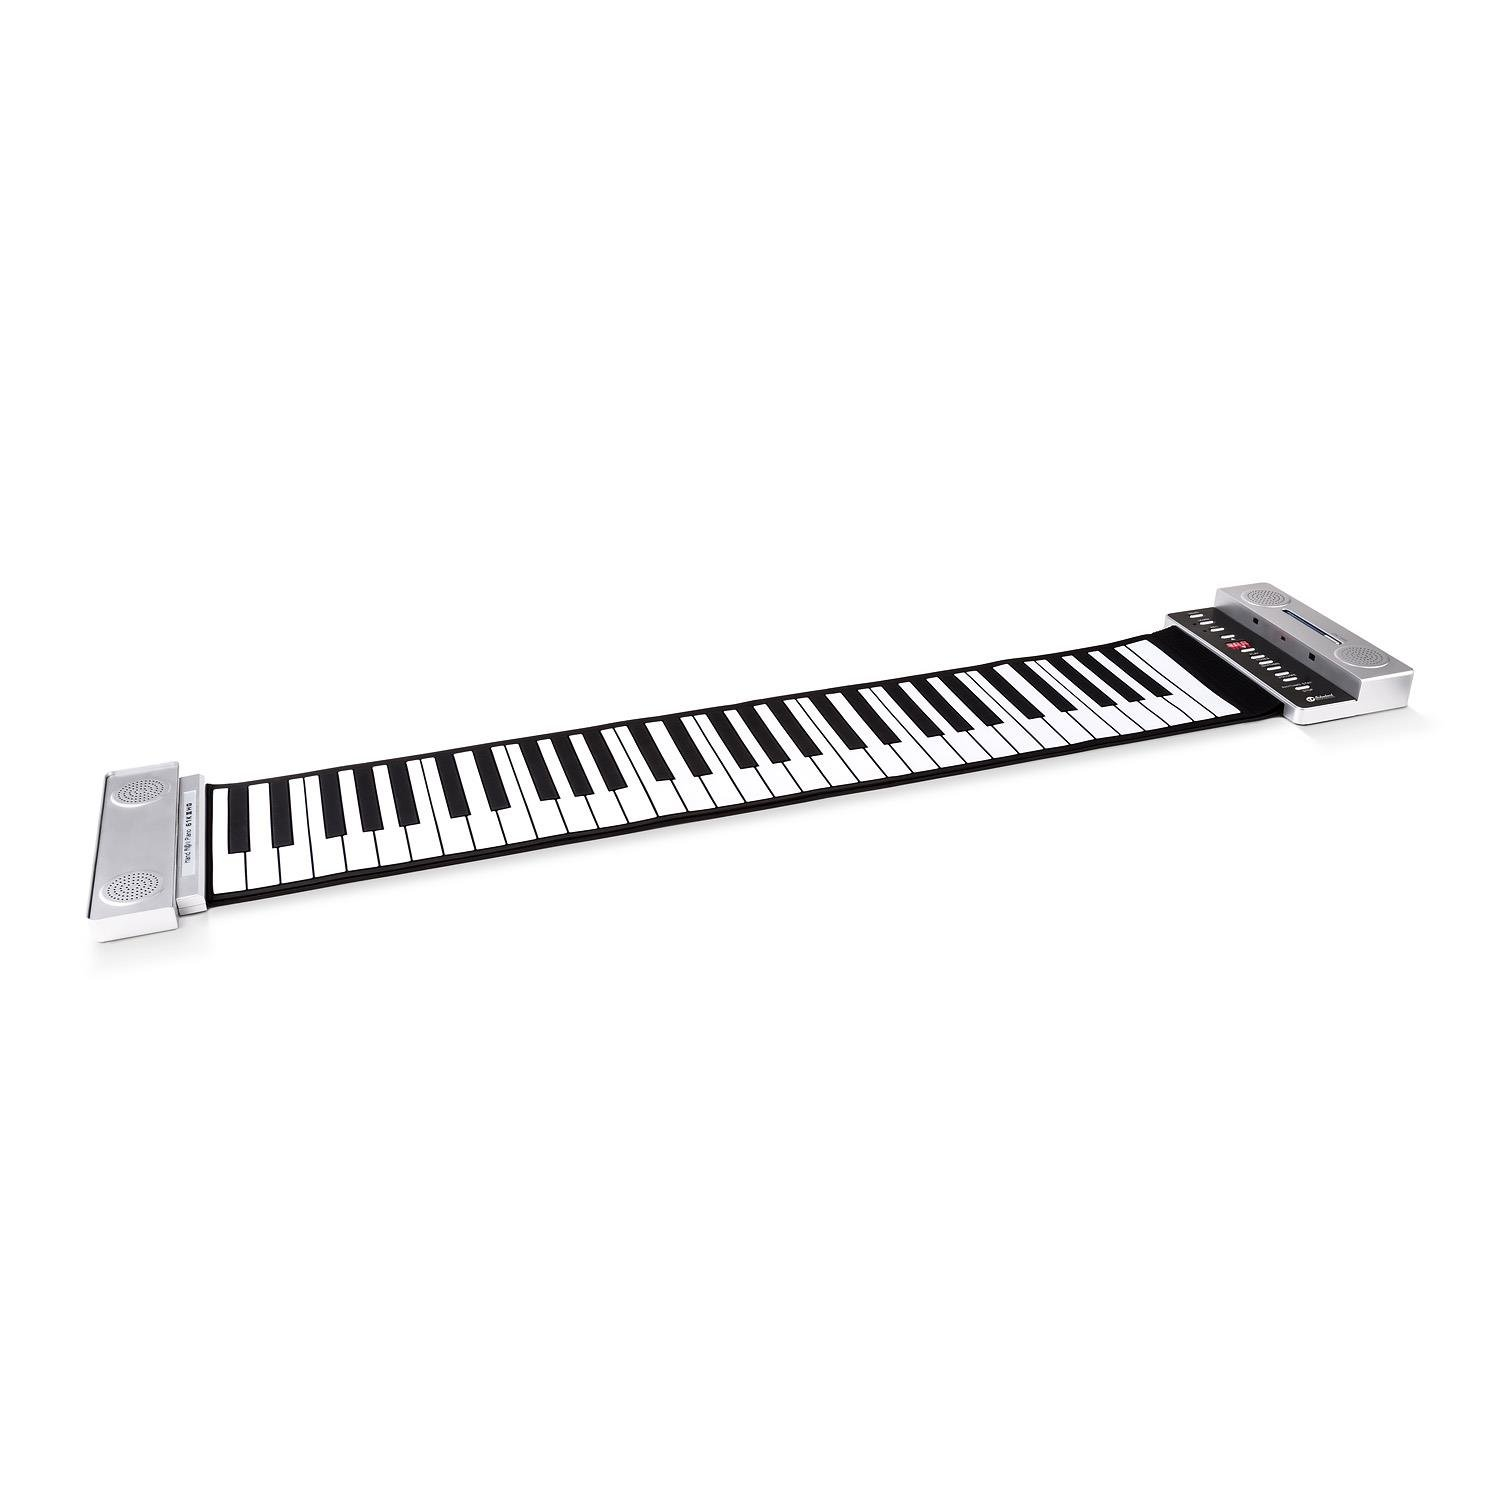 Schubert piano roll up con teclas teclado enrollable funcionamiento con pilas o